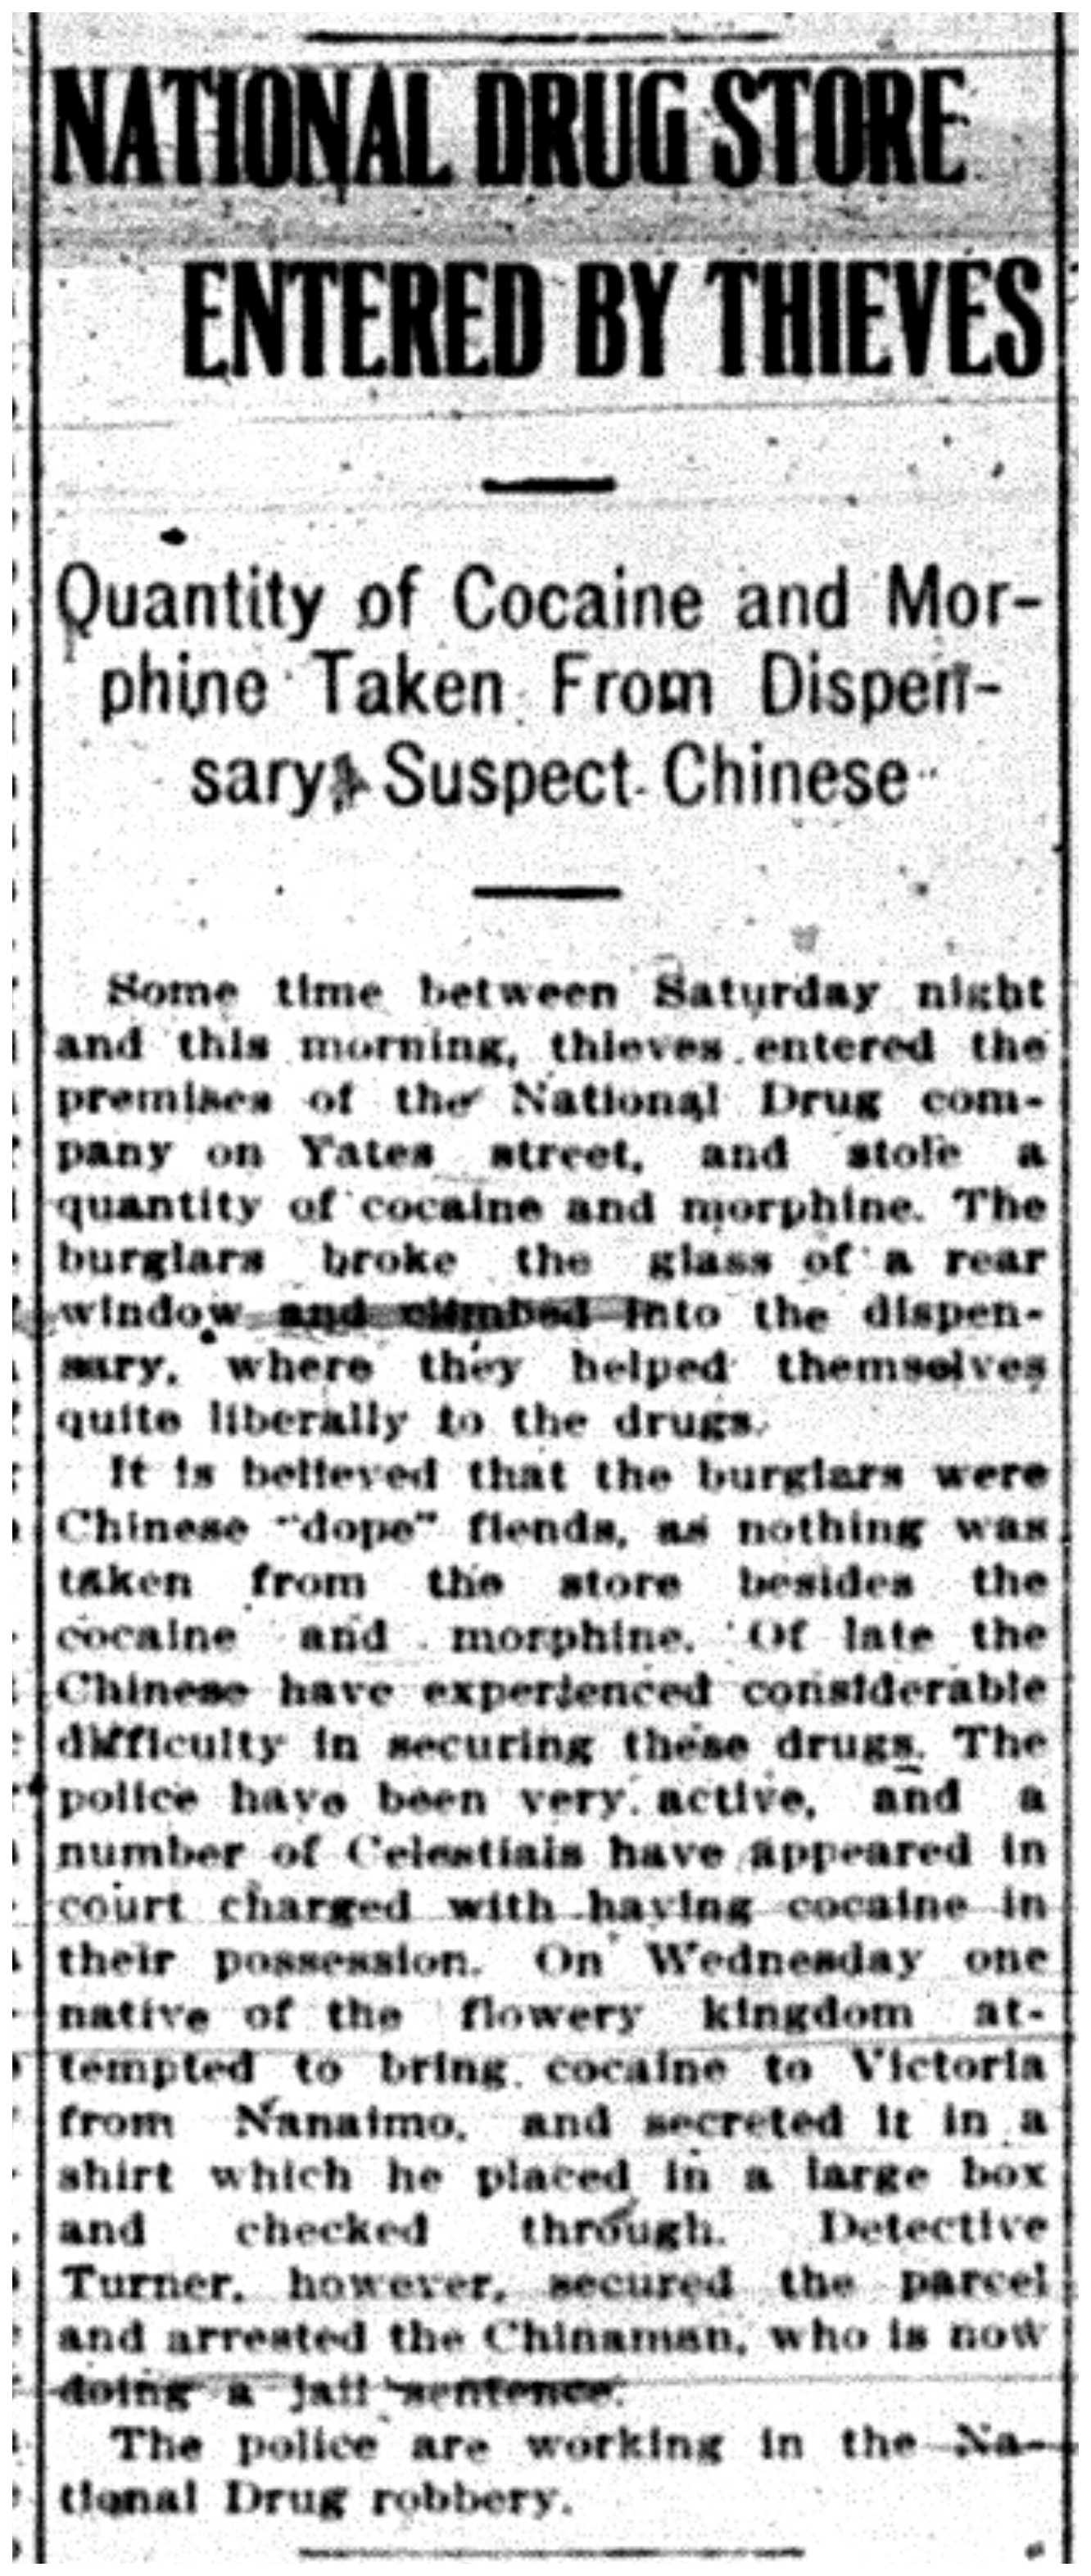 Theft of Drugs 1915